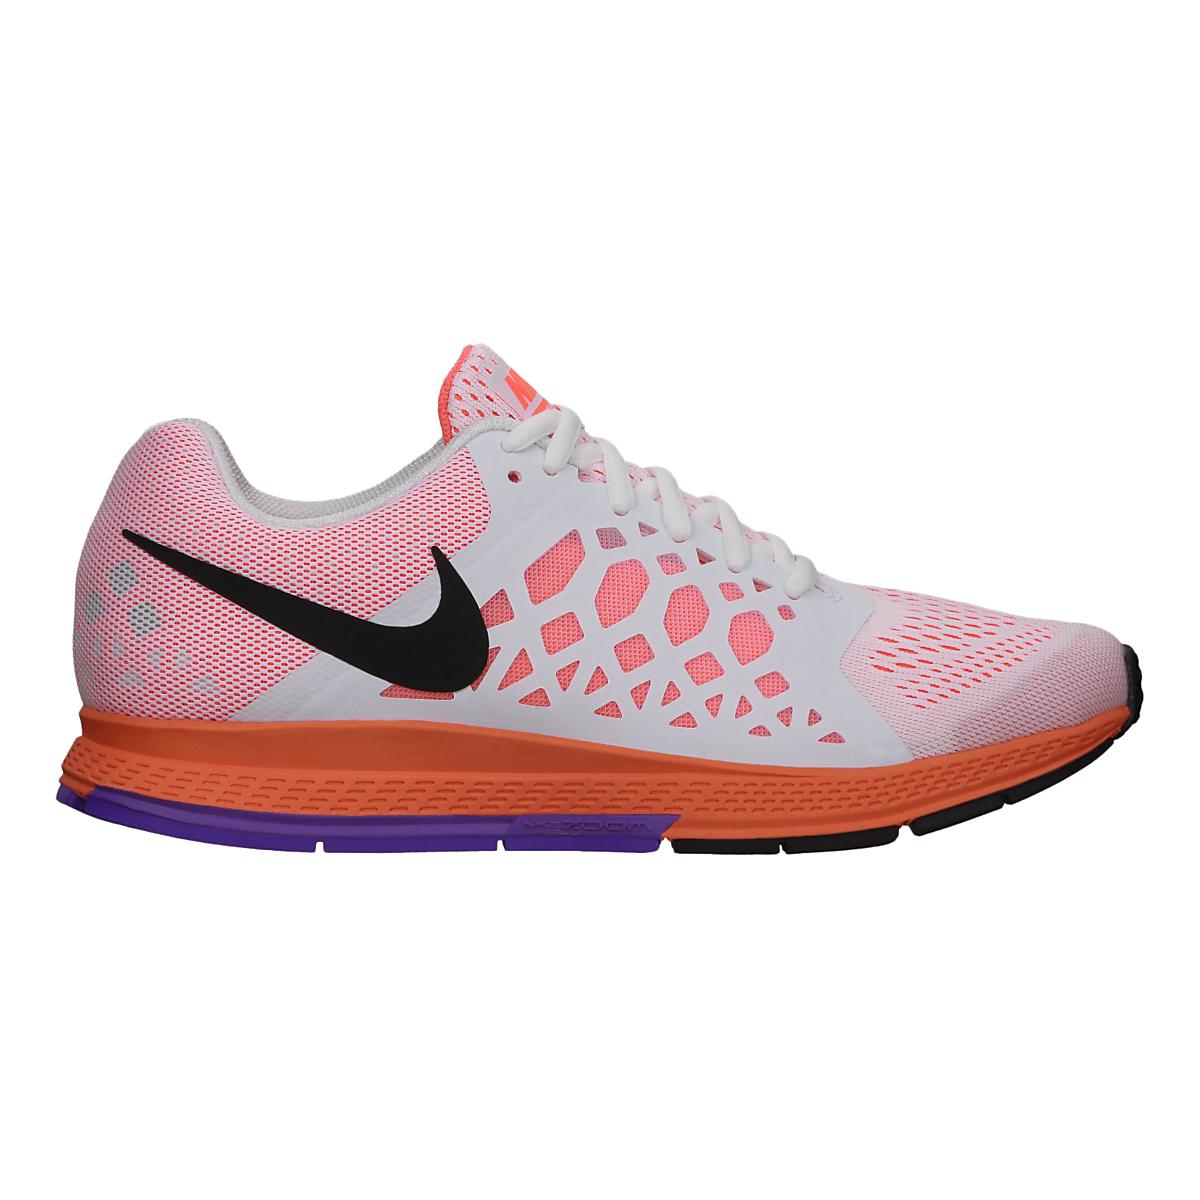 women 39 s nike air zoom structure 18 qs running shoe at road. Black Bedroom Furniture Sets. Home Design Ideas